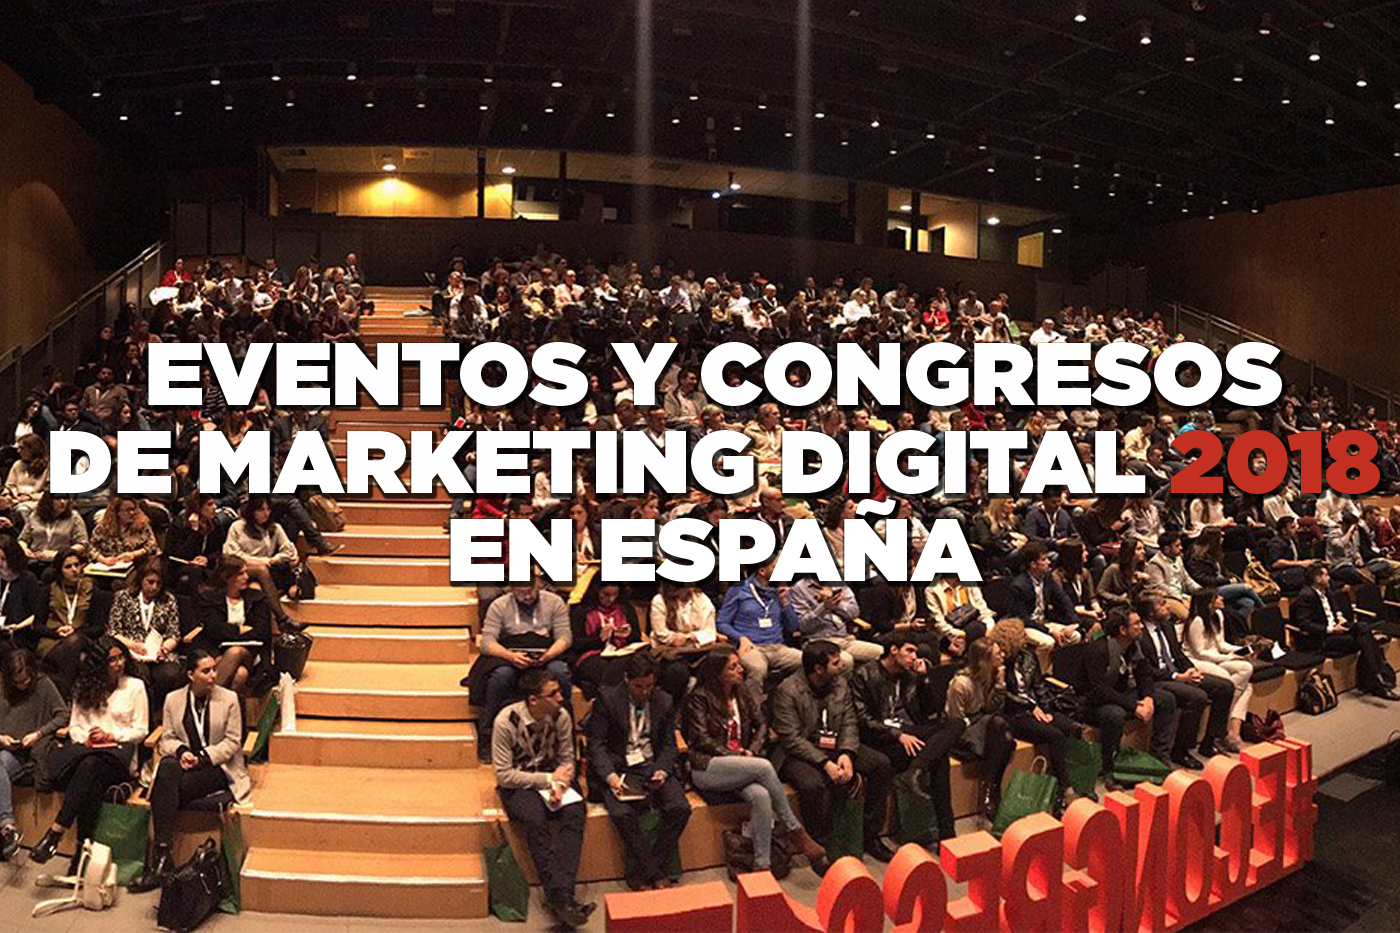 congresos marketing digital 2018 en España